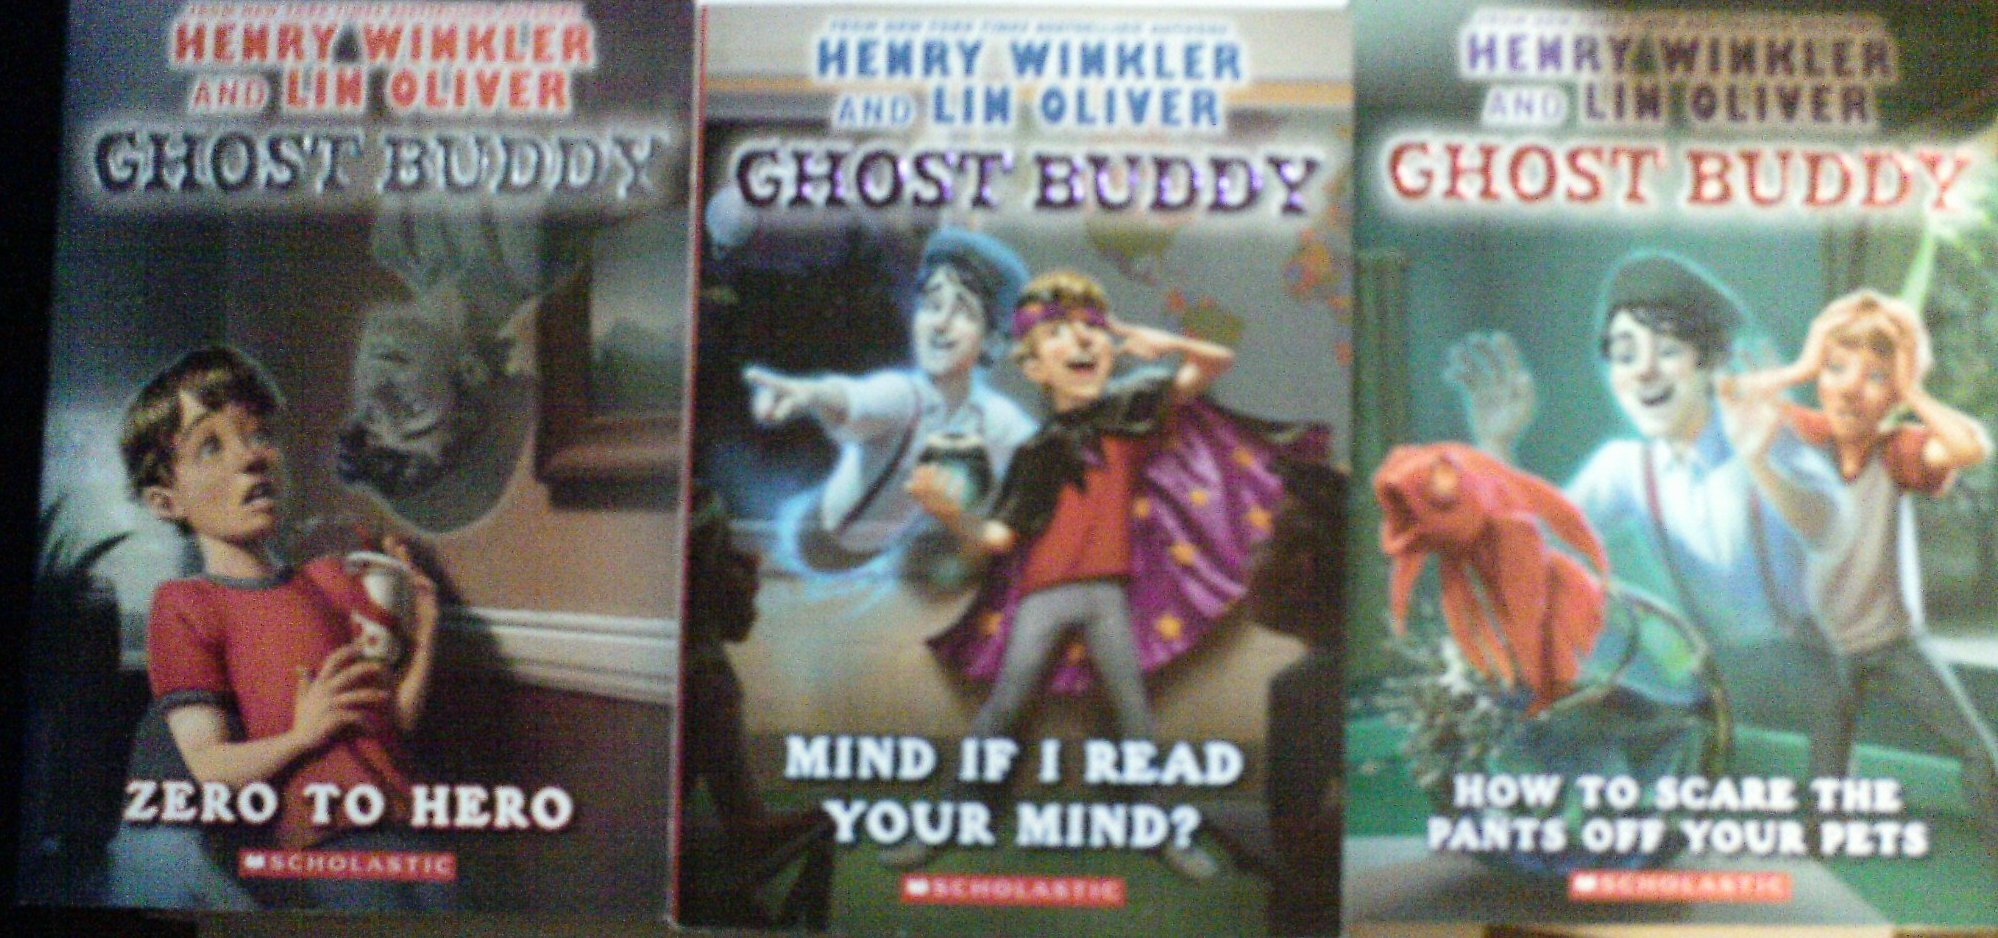 Download Ghost Buddy 3-book Set: Zero to Zero, Mind If I Read Your Mind?, How to Scare the Pants Off Your Pets [Paperback] pdf